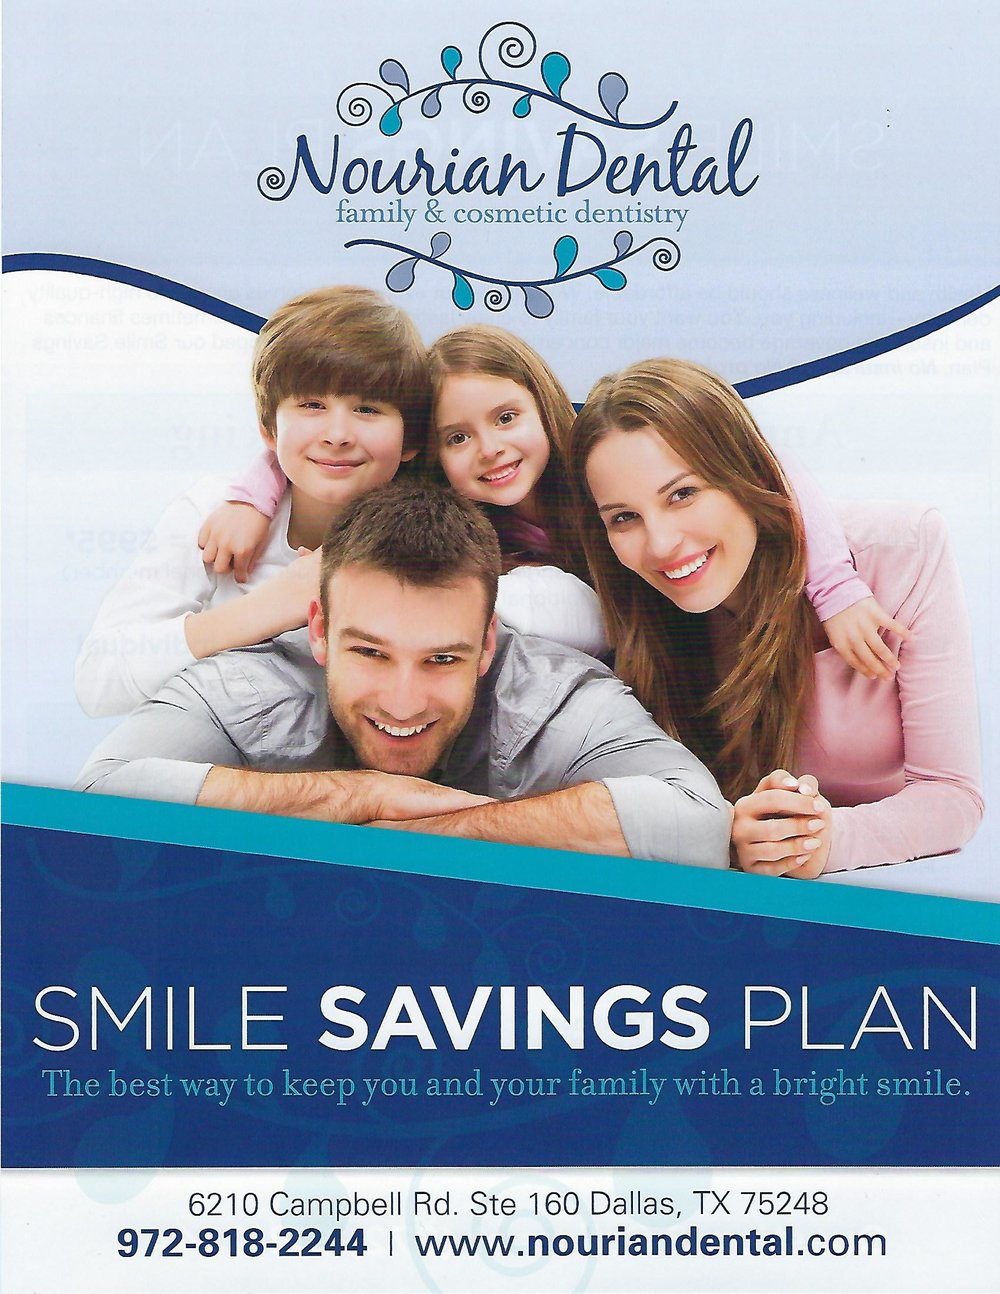 Smile Savings Plan - Low-Cost & AffordableAnnual Discount PlanNo Deductible or MaximumNo Credit CheckFor Both Children and Adults